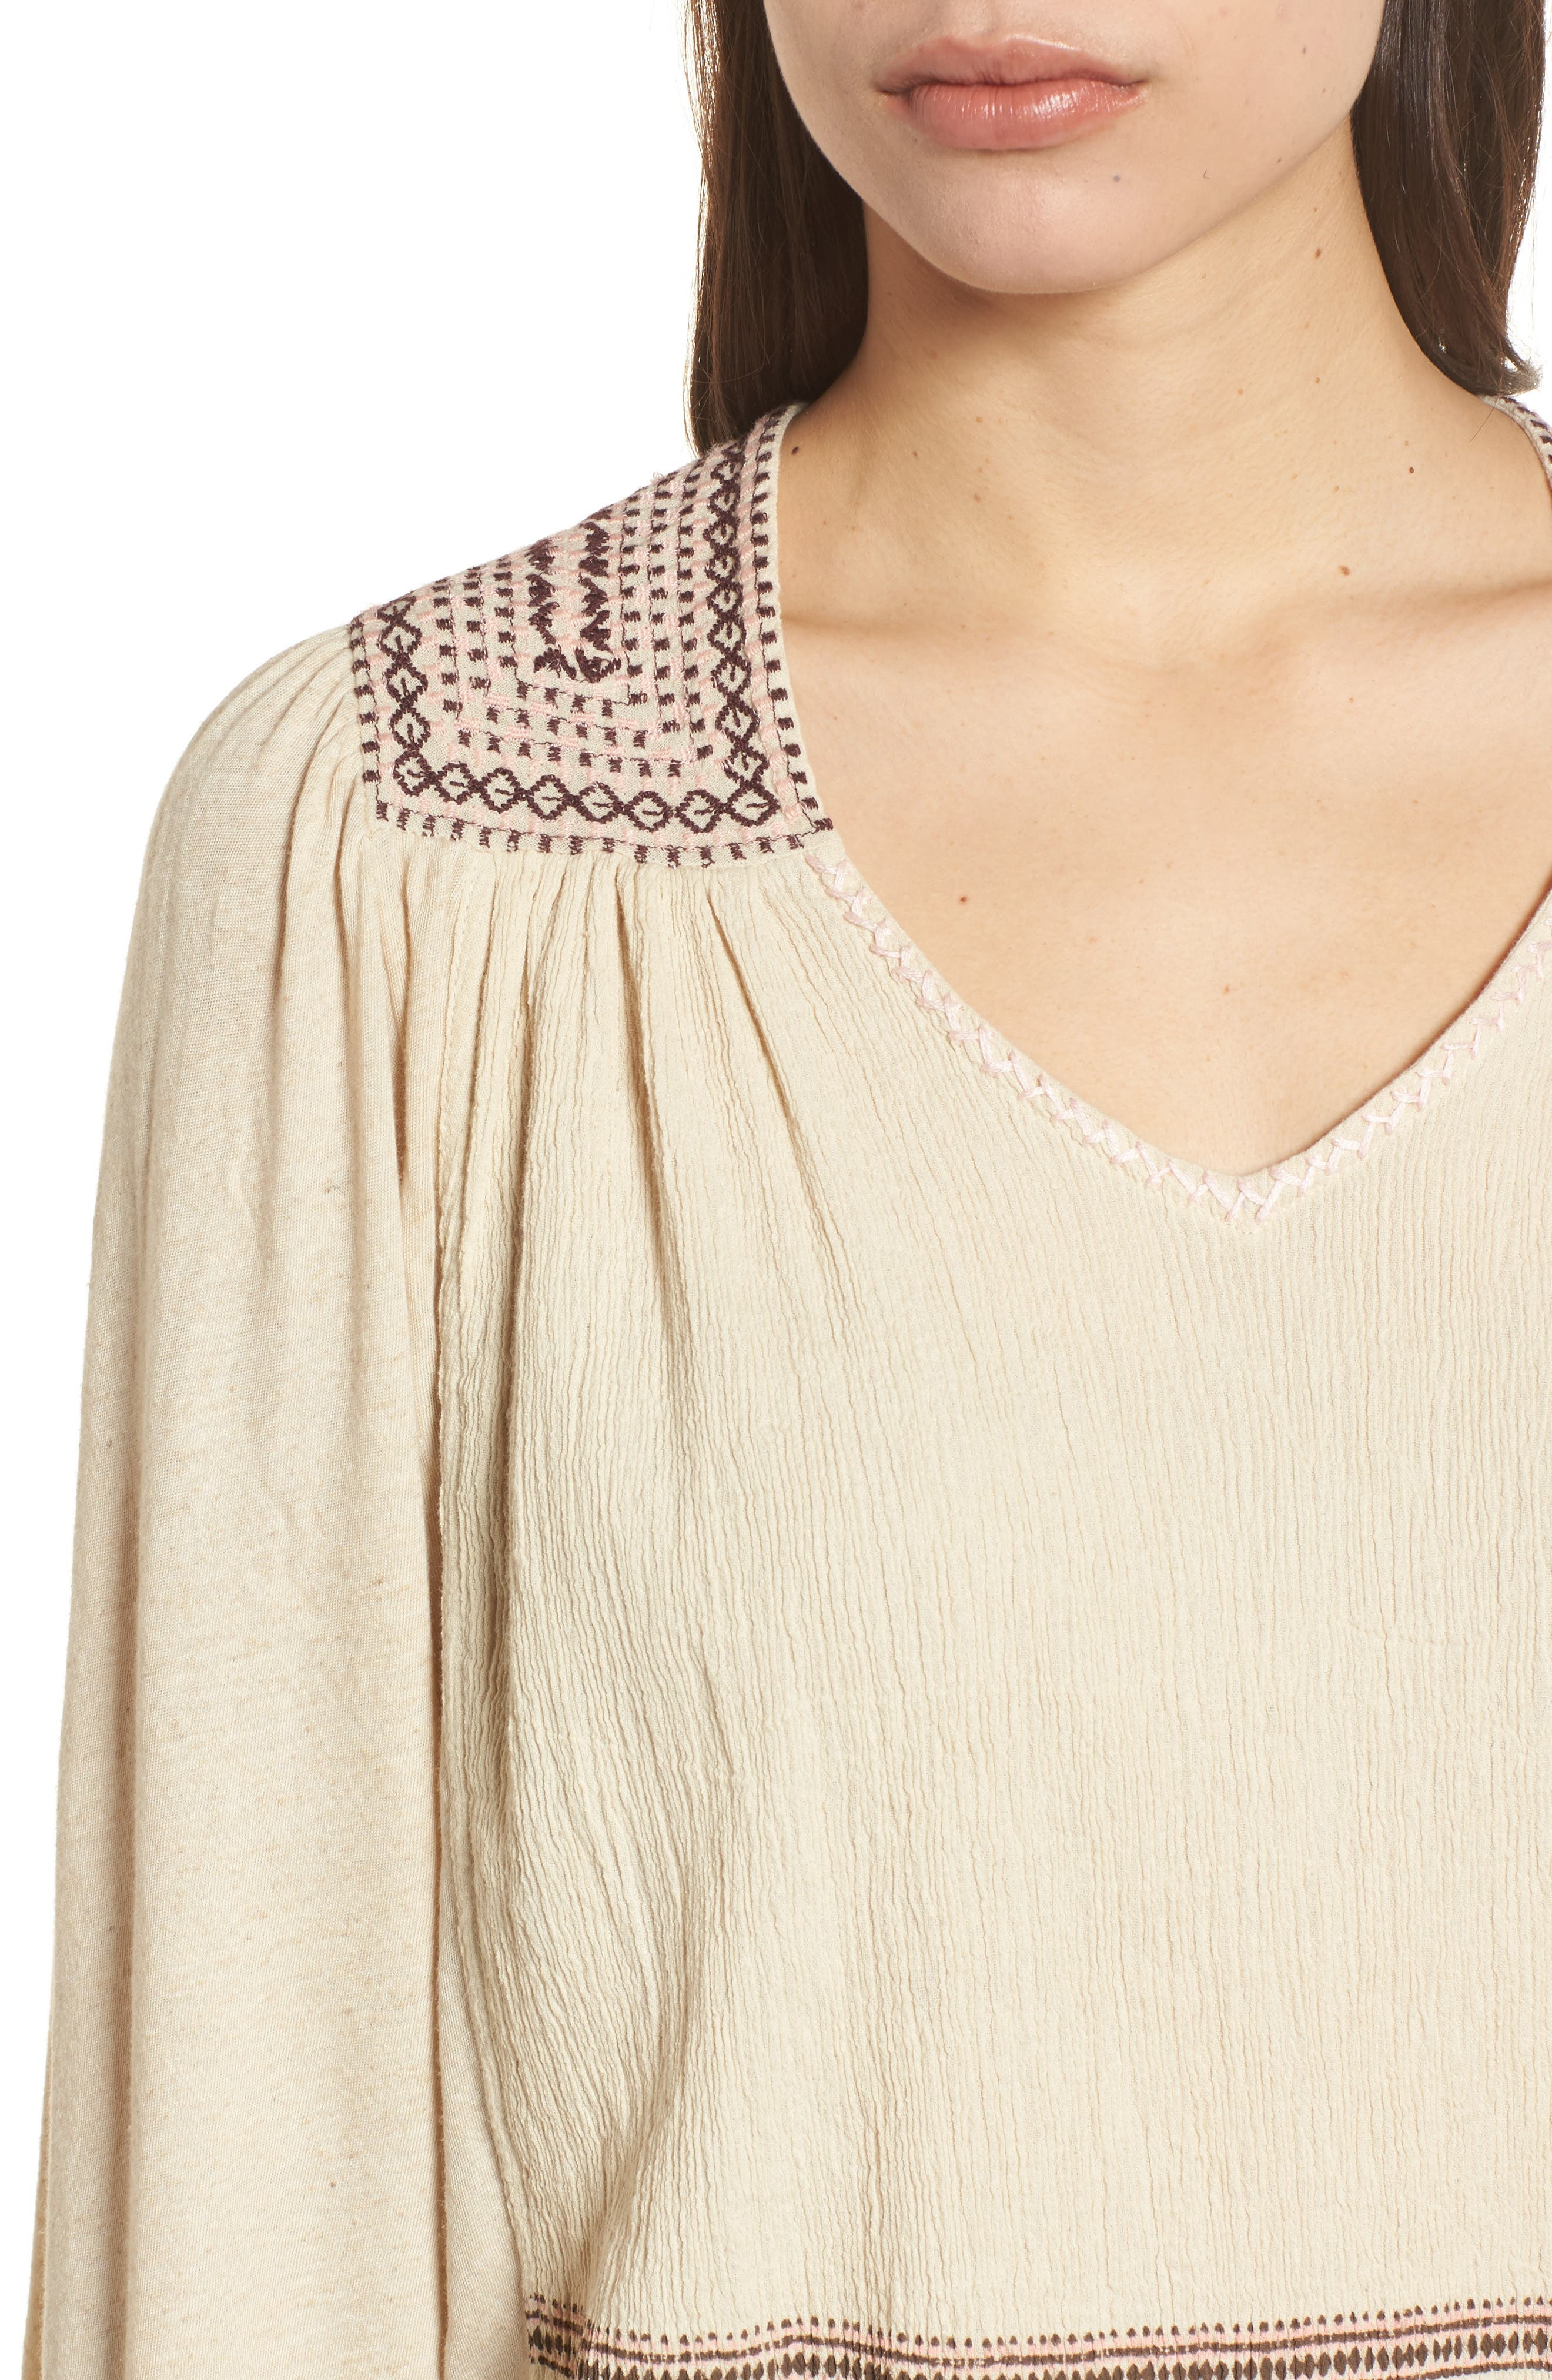 Market Embroidered Peasant Blouse,                             Alternate thumbnail 4, color,                             900